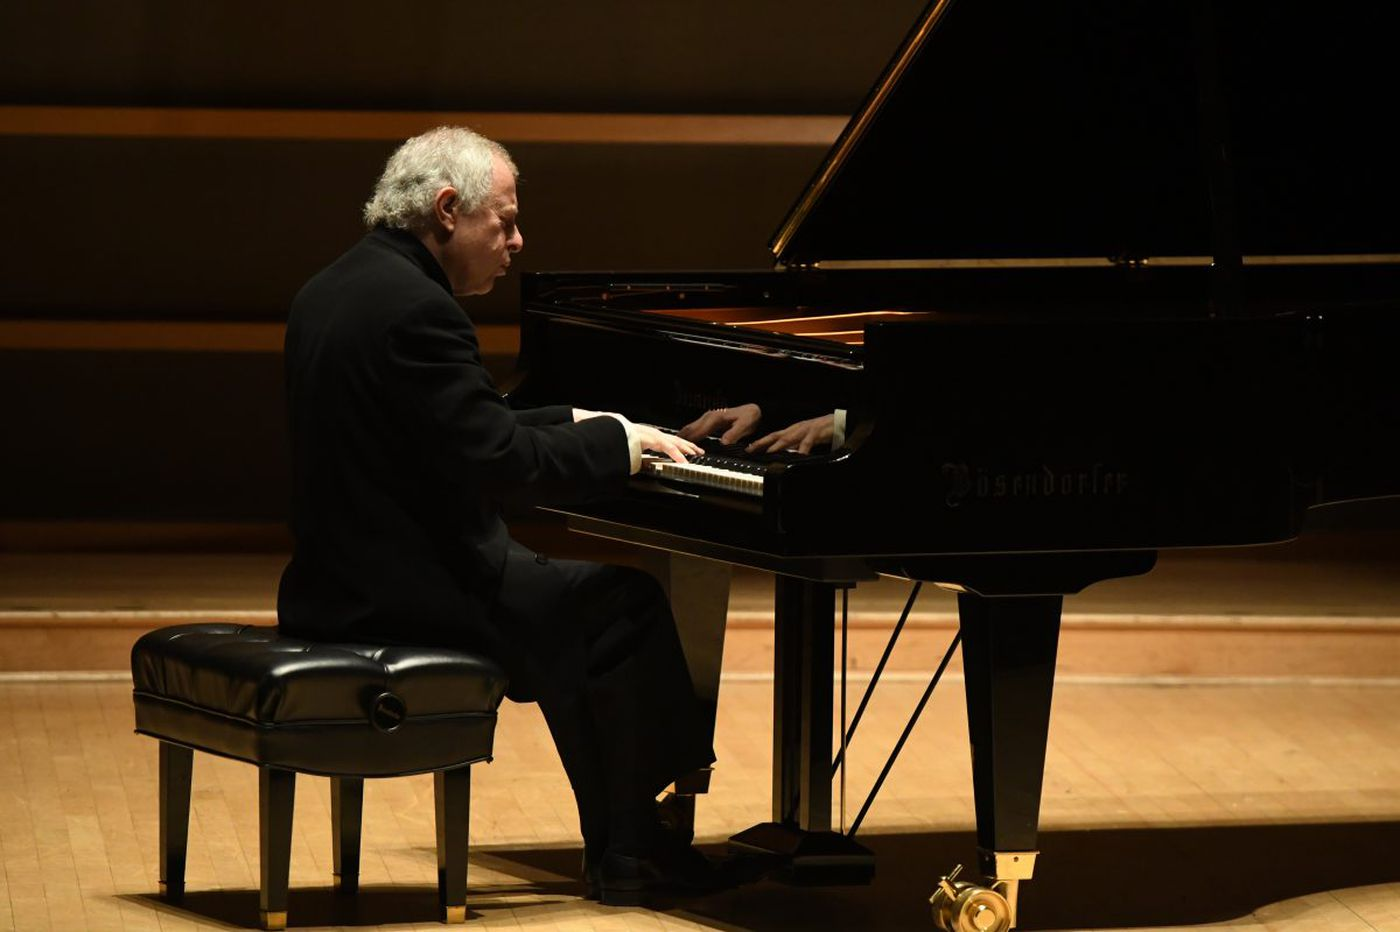 Pianist András Schiff is a master of detail at the Kimmel